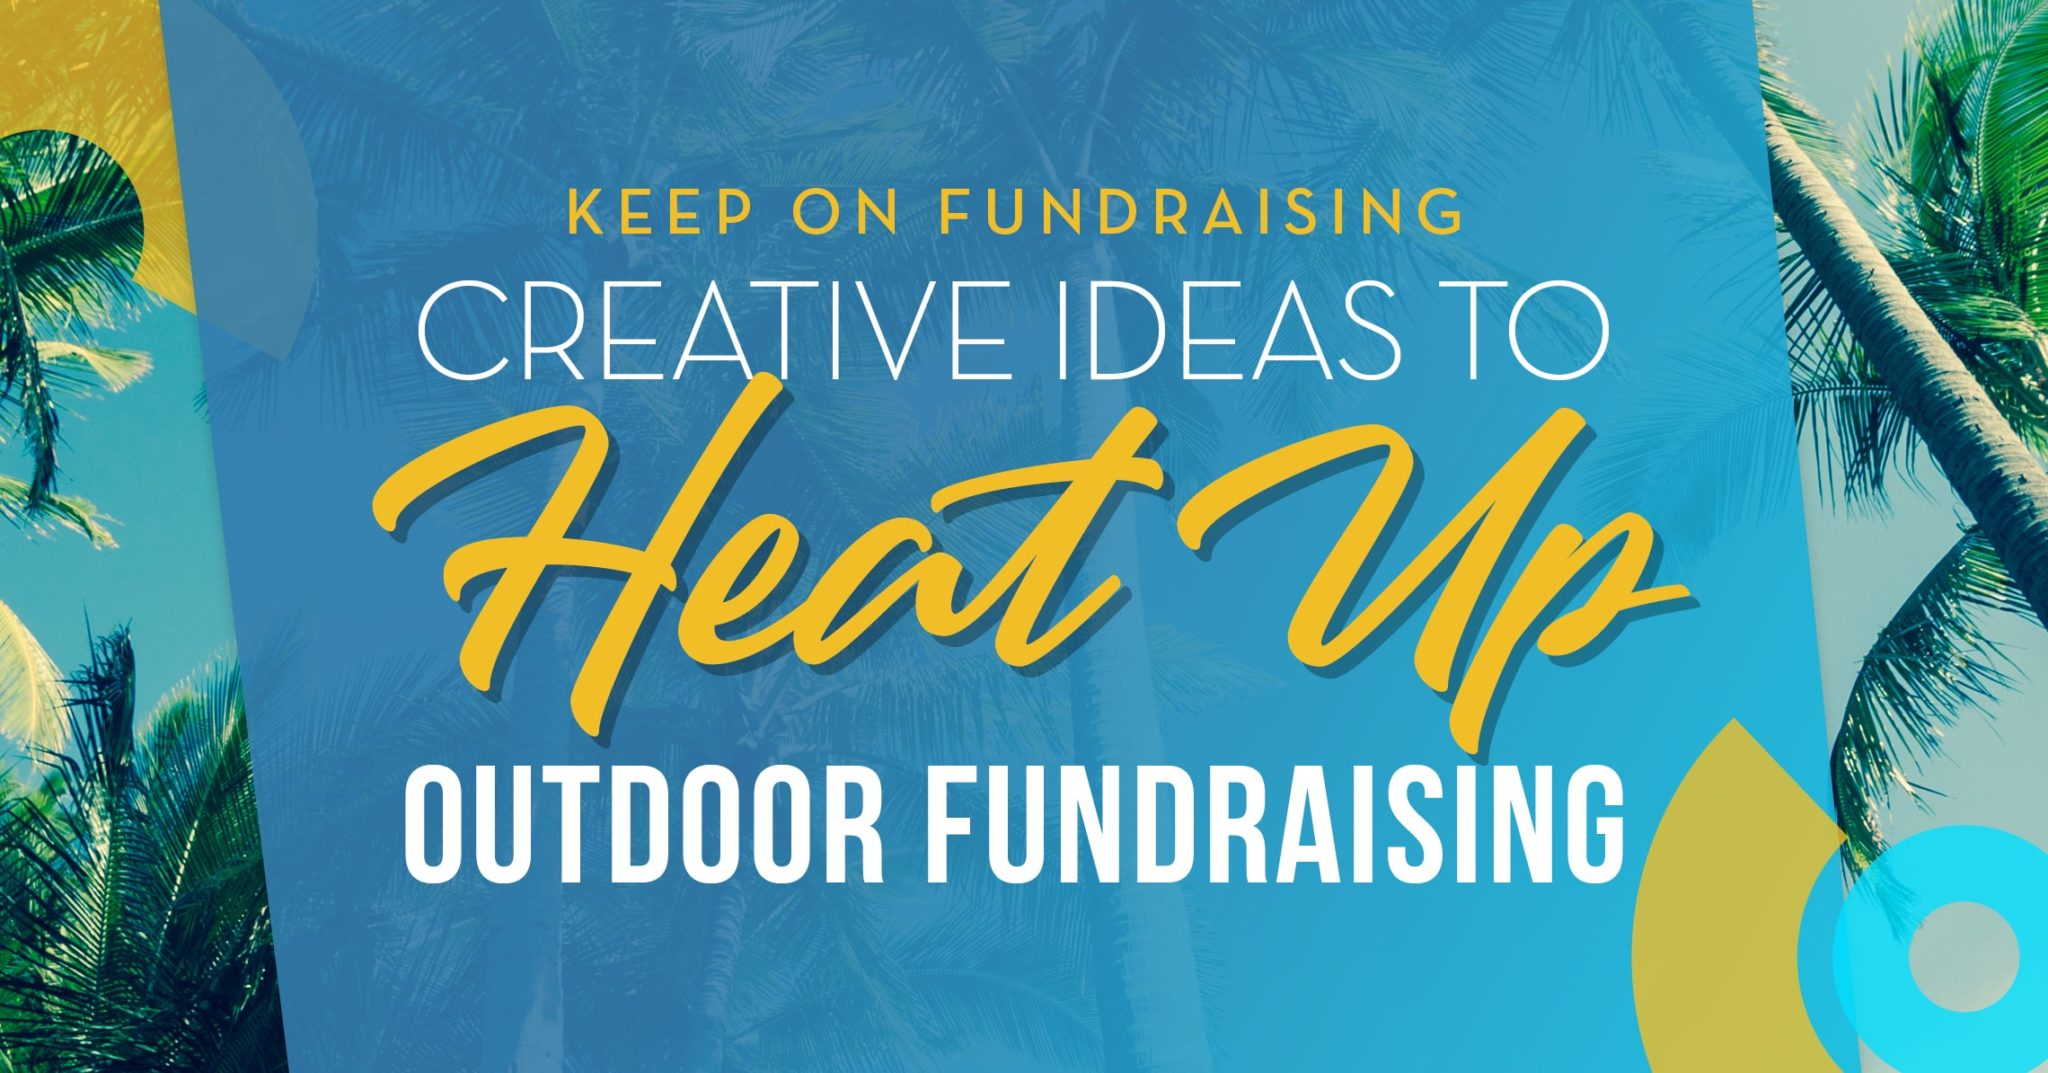 Creative Ideas to Heat Up Outdoor Fundraising